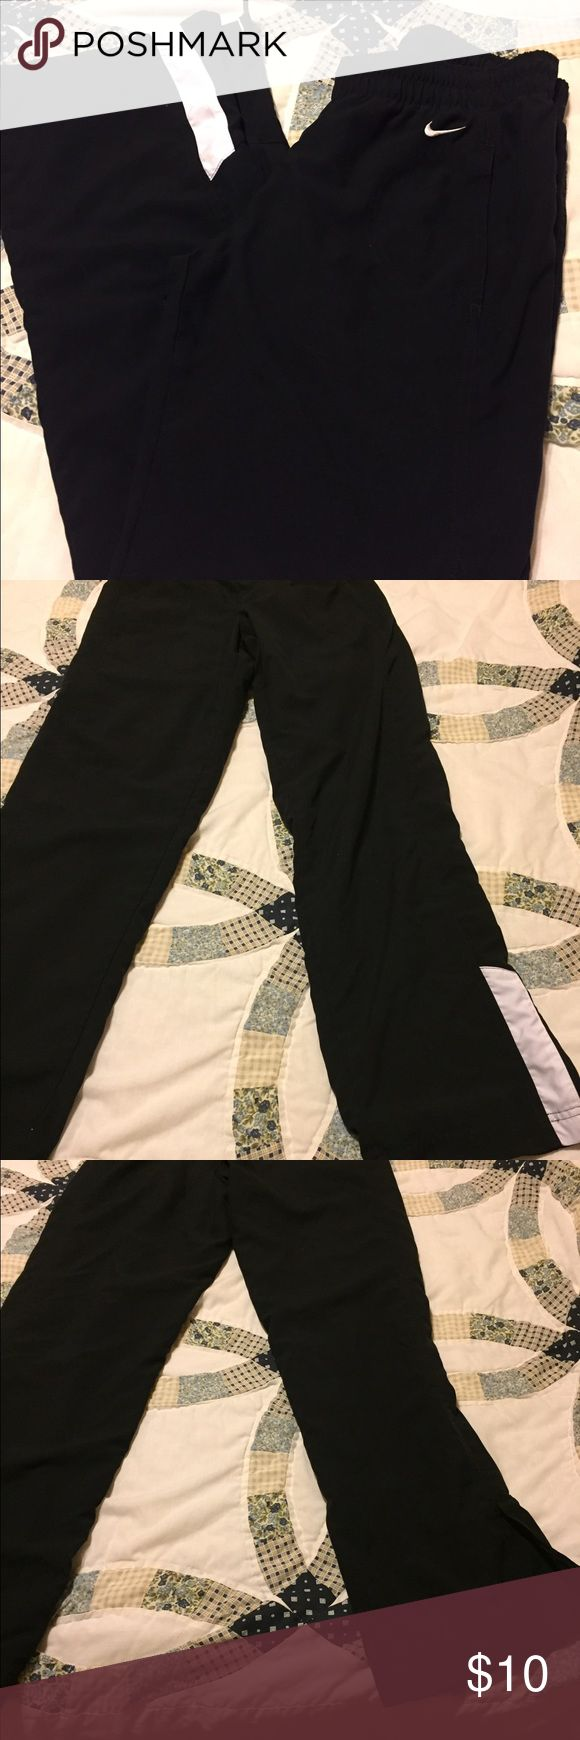 Women's Nike sweat pants, size S, excellent cond Women's Nike sweat pants, size S, excellent condition, black with white stripe near ankle, really soft on outside and mesh lining on inside, 100% polyester. Super comfy! Nike Pants Track Pants & Joggers